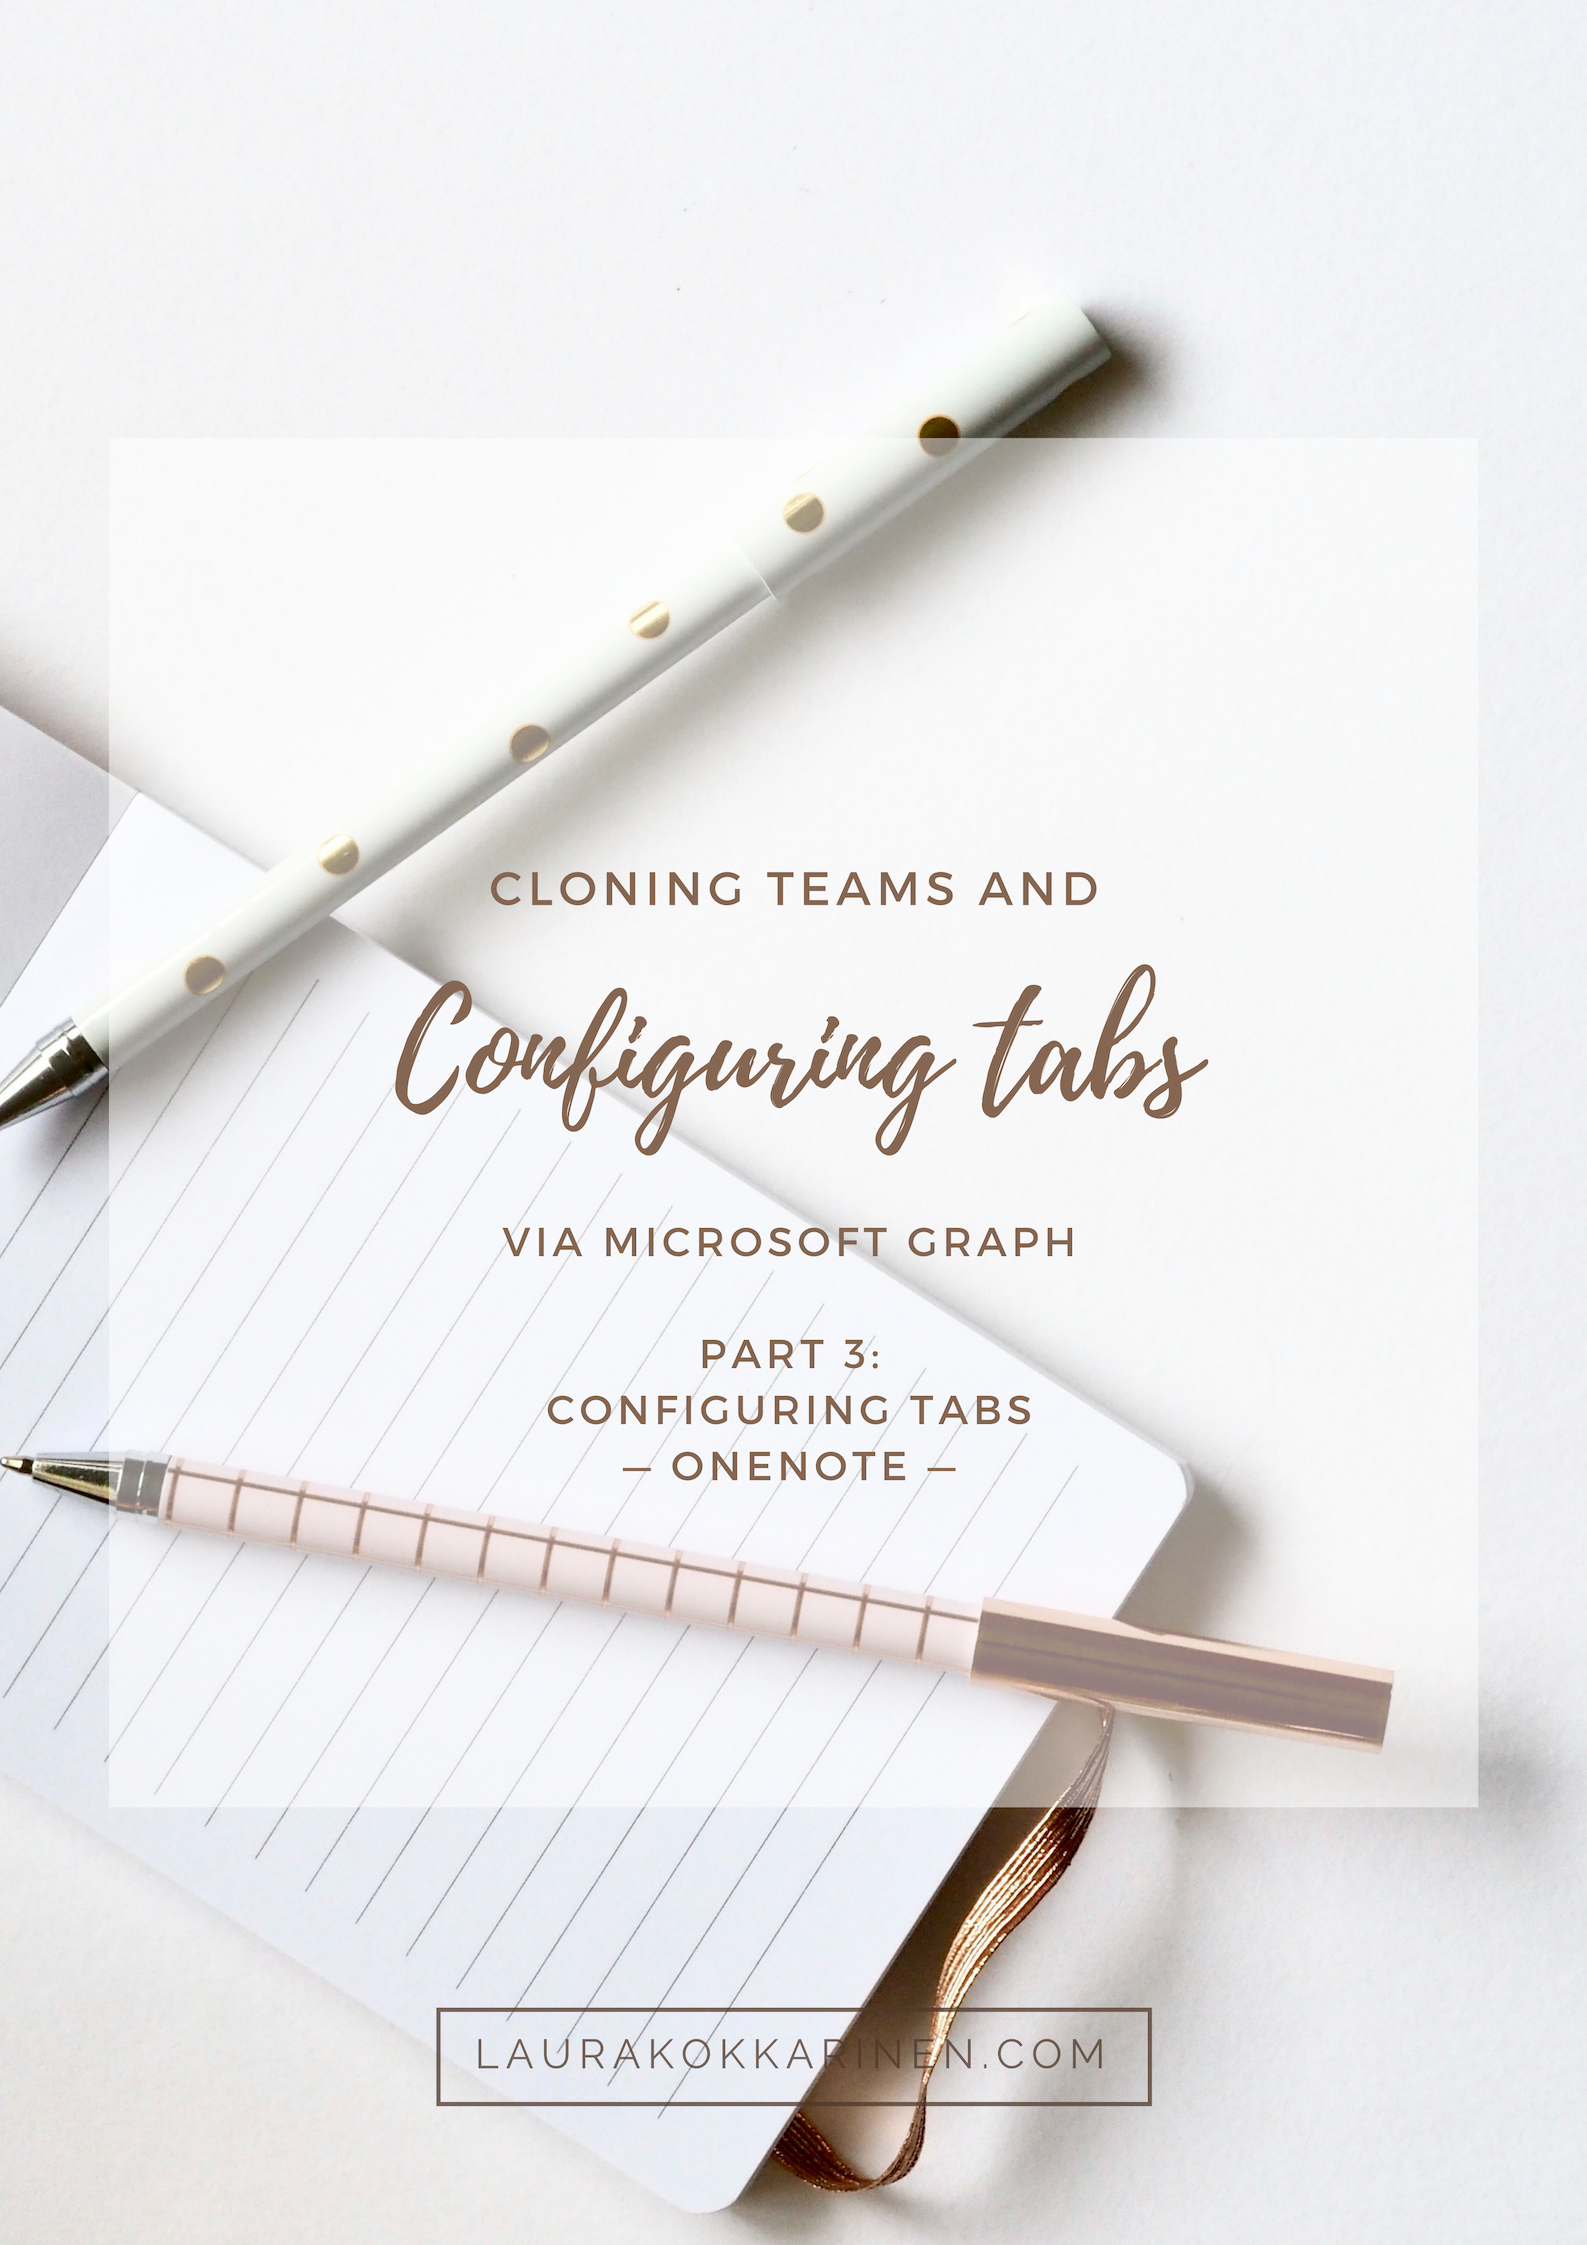 Cloning Teams and Configuring Tabs via Microsoft Graph